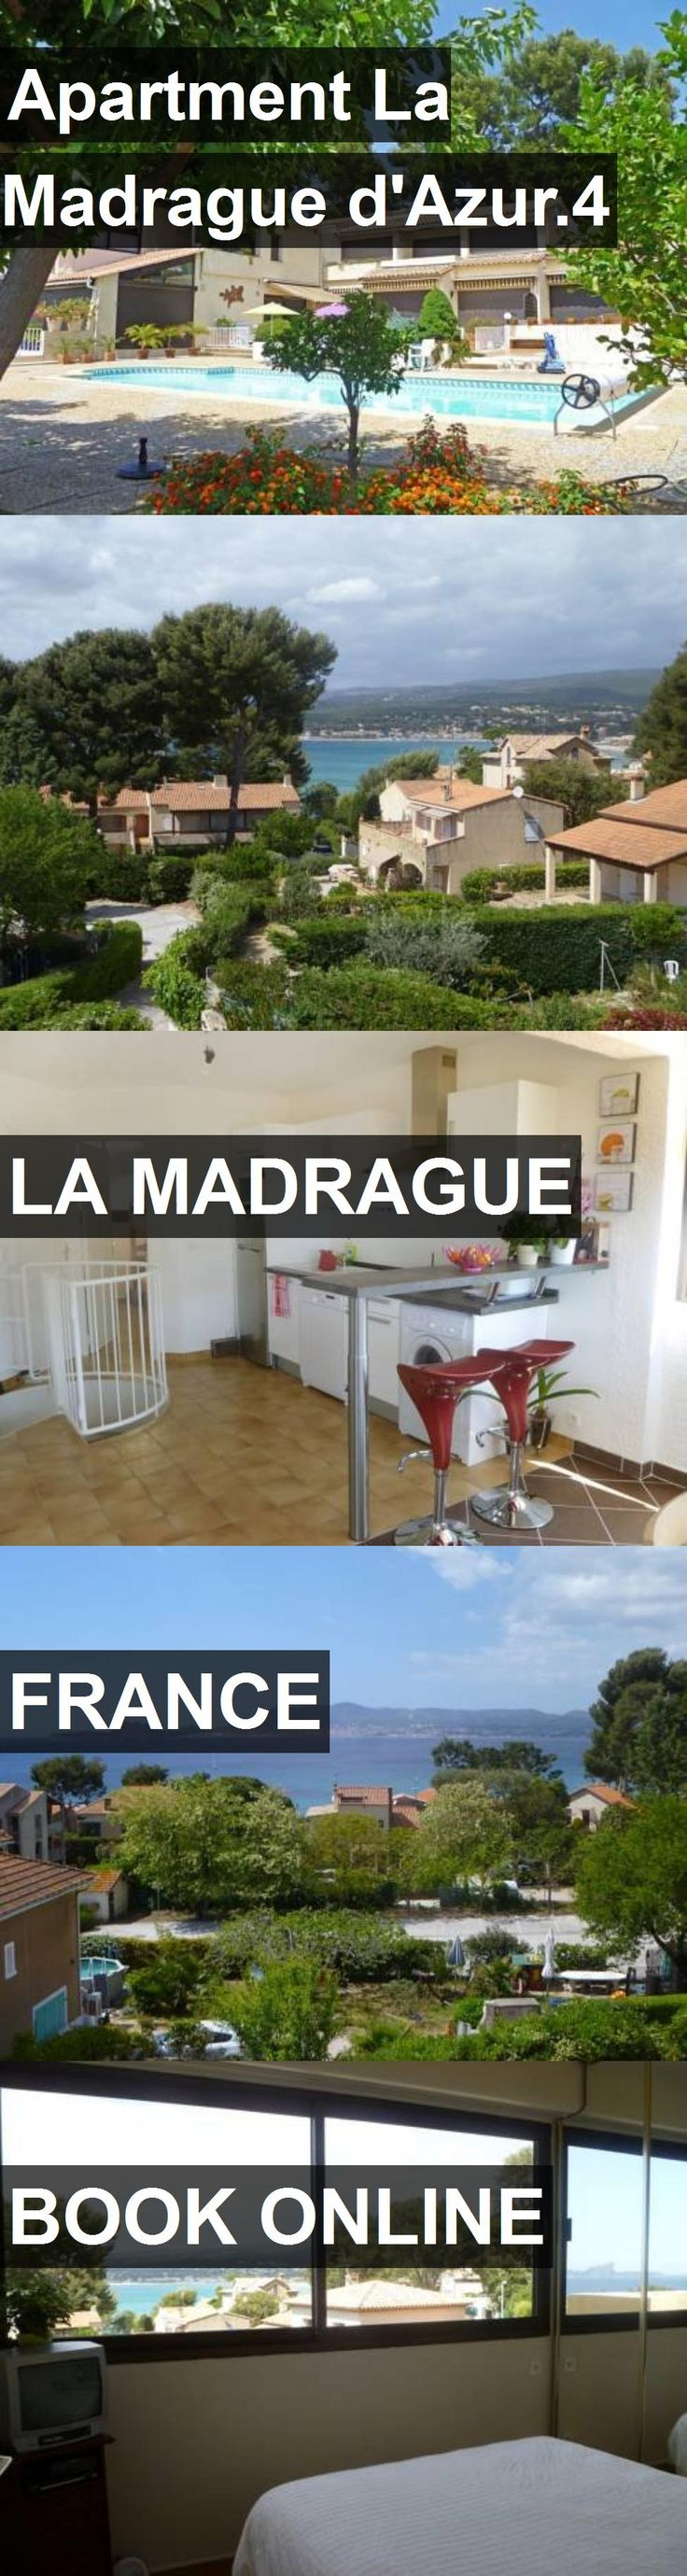 Apartment La Madrague d'Azur.4 in La Madrague, France. For more information, photos, reviews and best prices please follow the link. #France #LaMadrague #travel #vacation #apartment